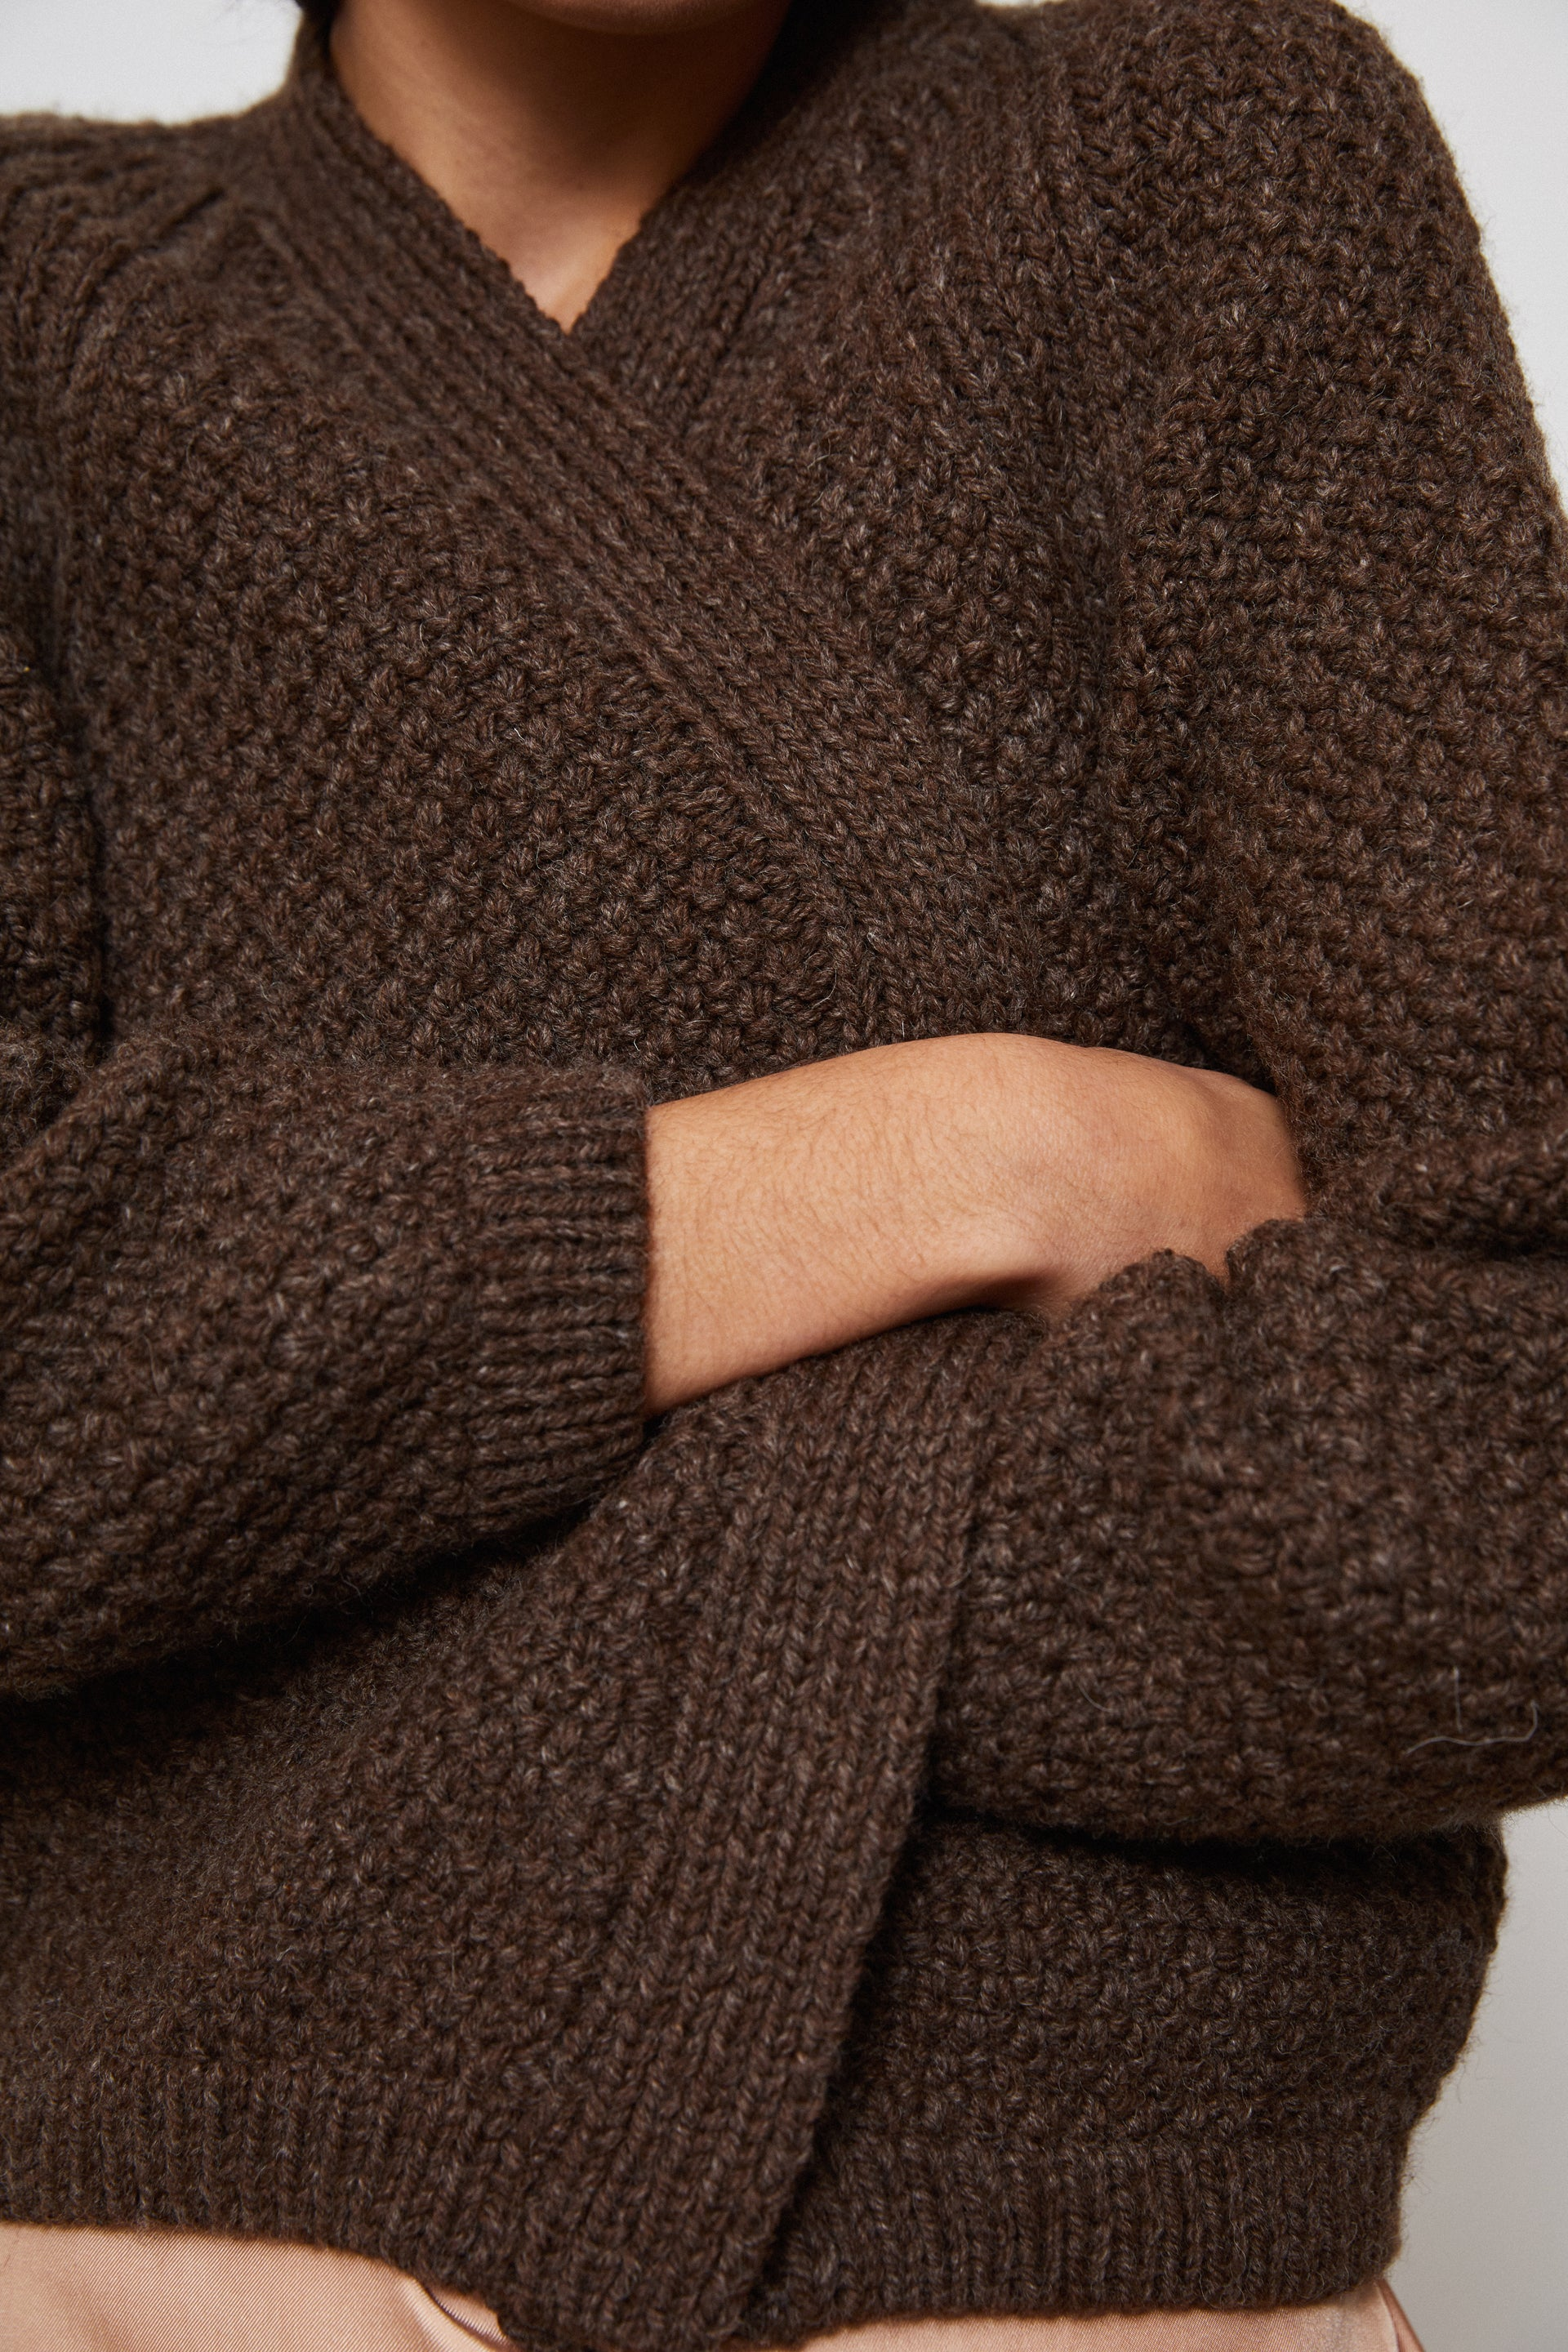 HAND KNITTED WOOL CARDIGAN - EARTH